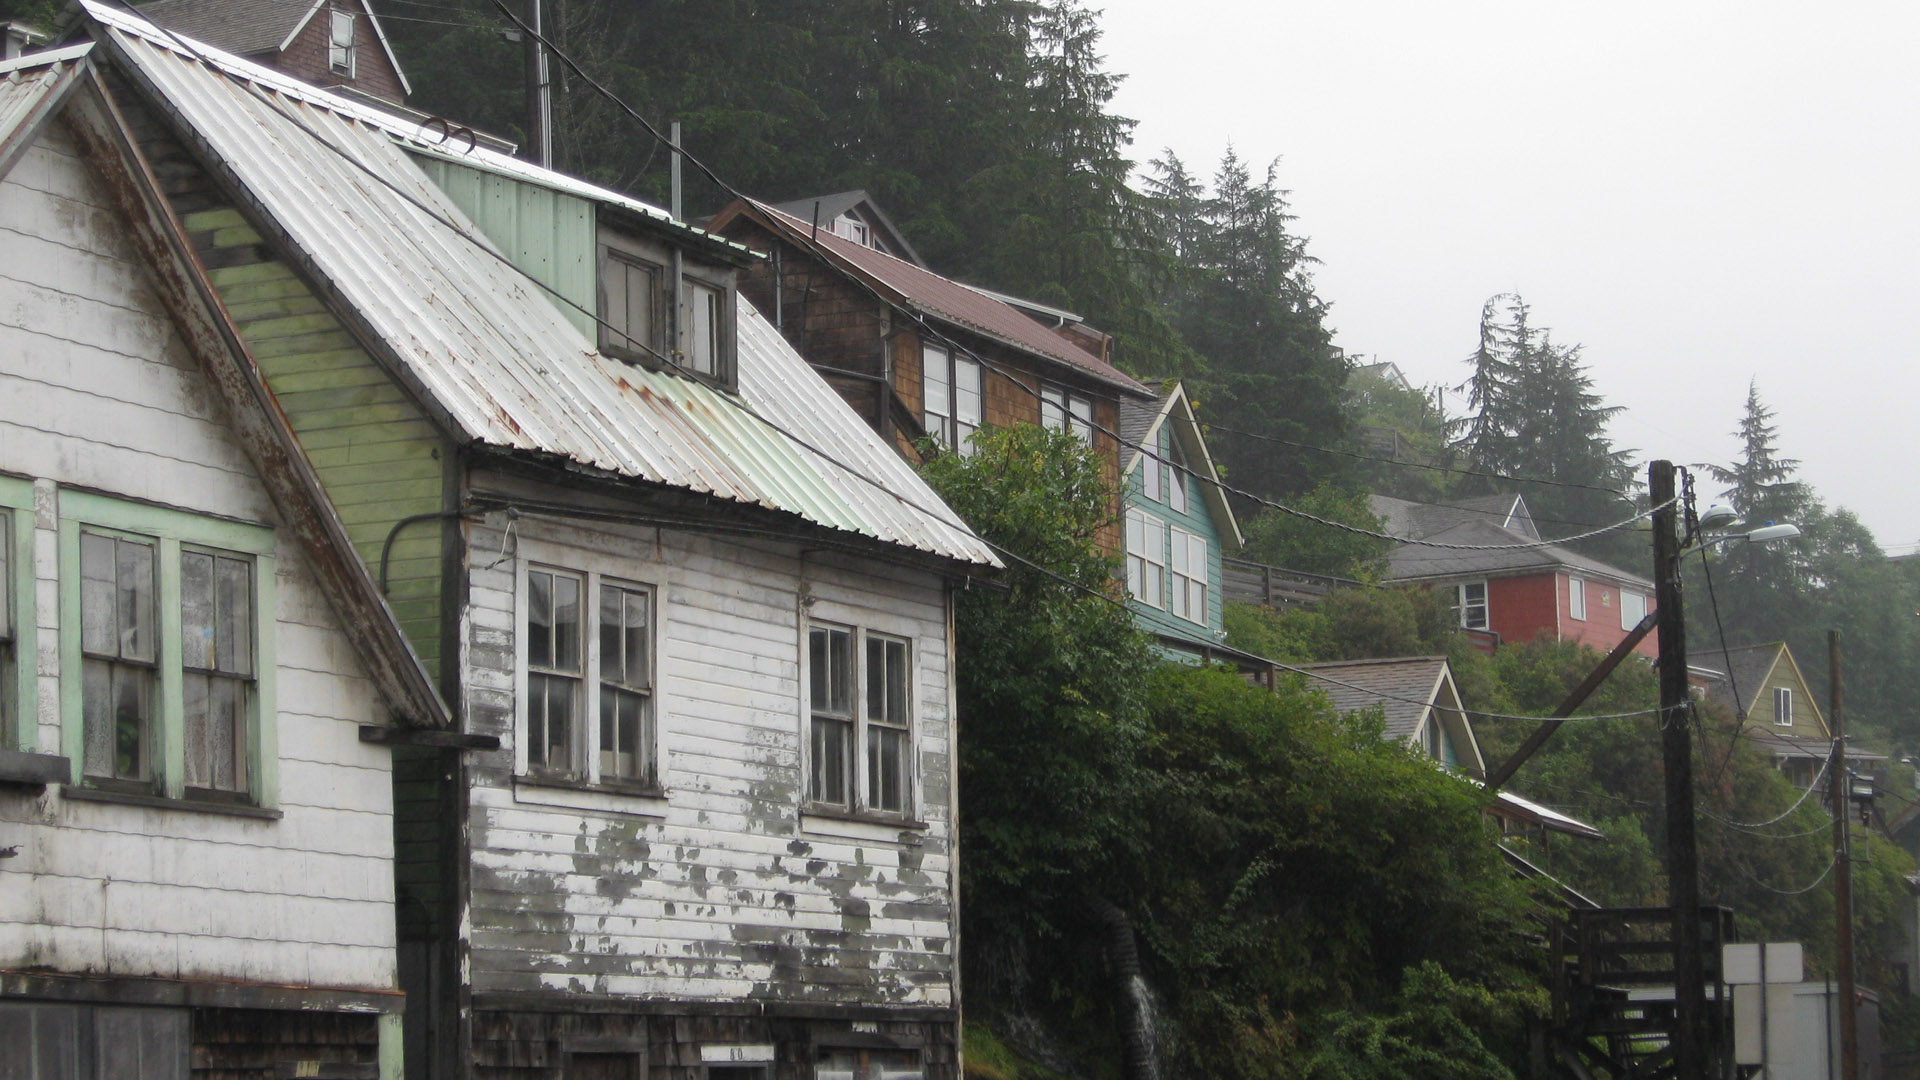 Ketchikan houses widescreen wallpaper, 1920 by 1080